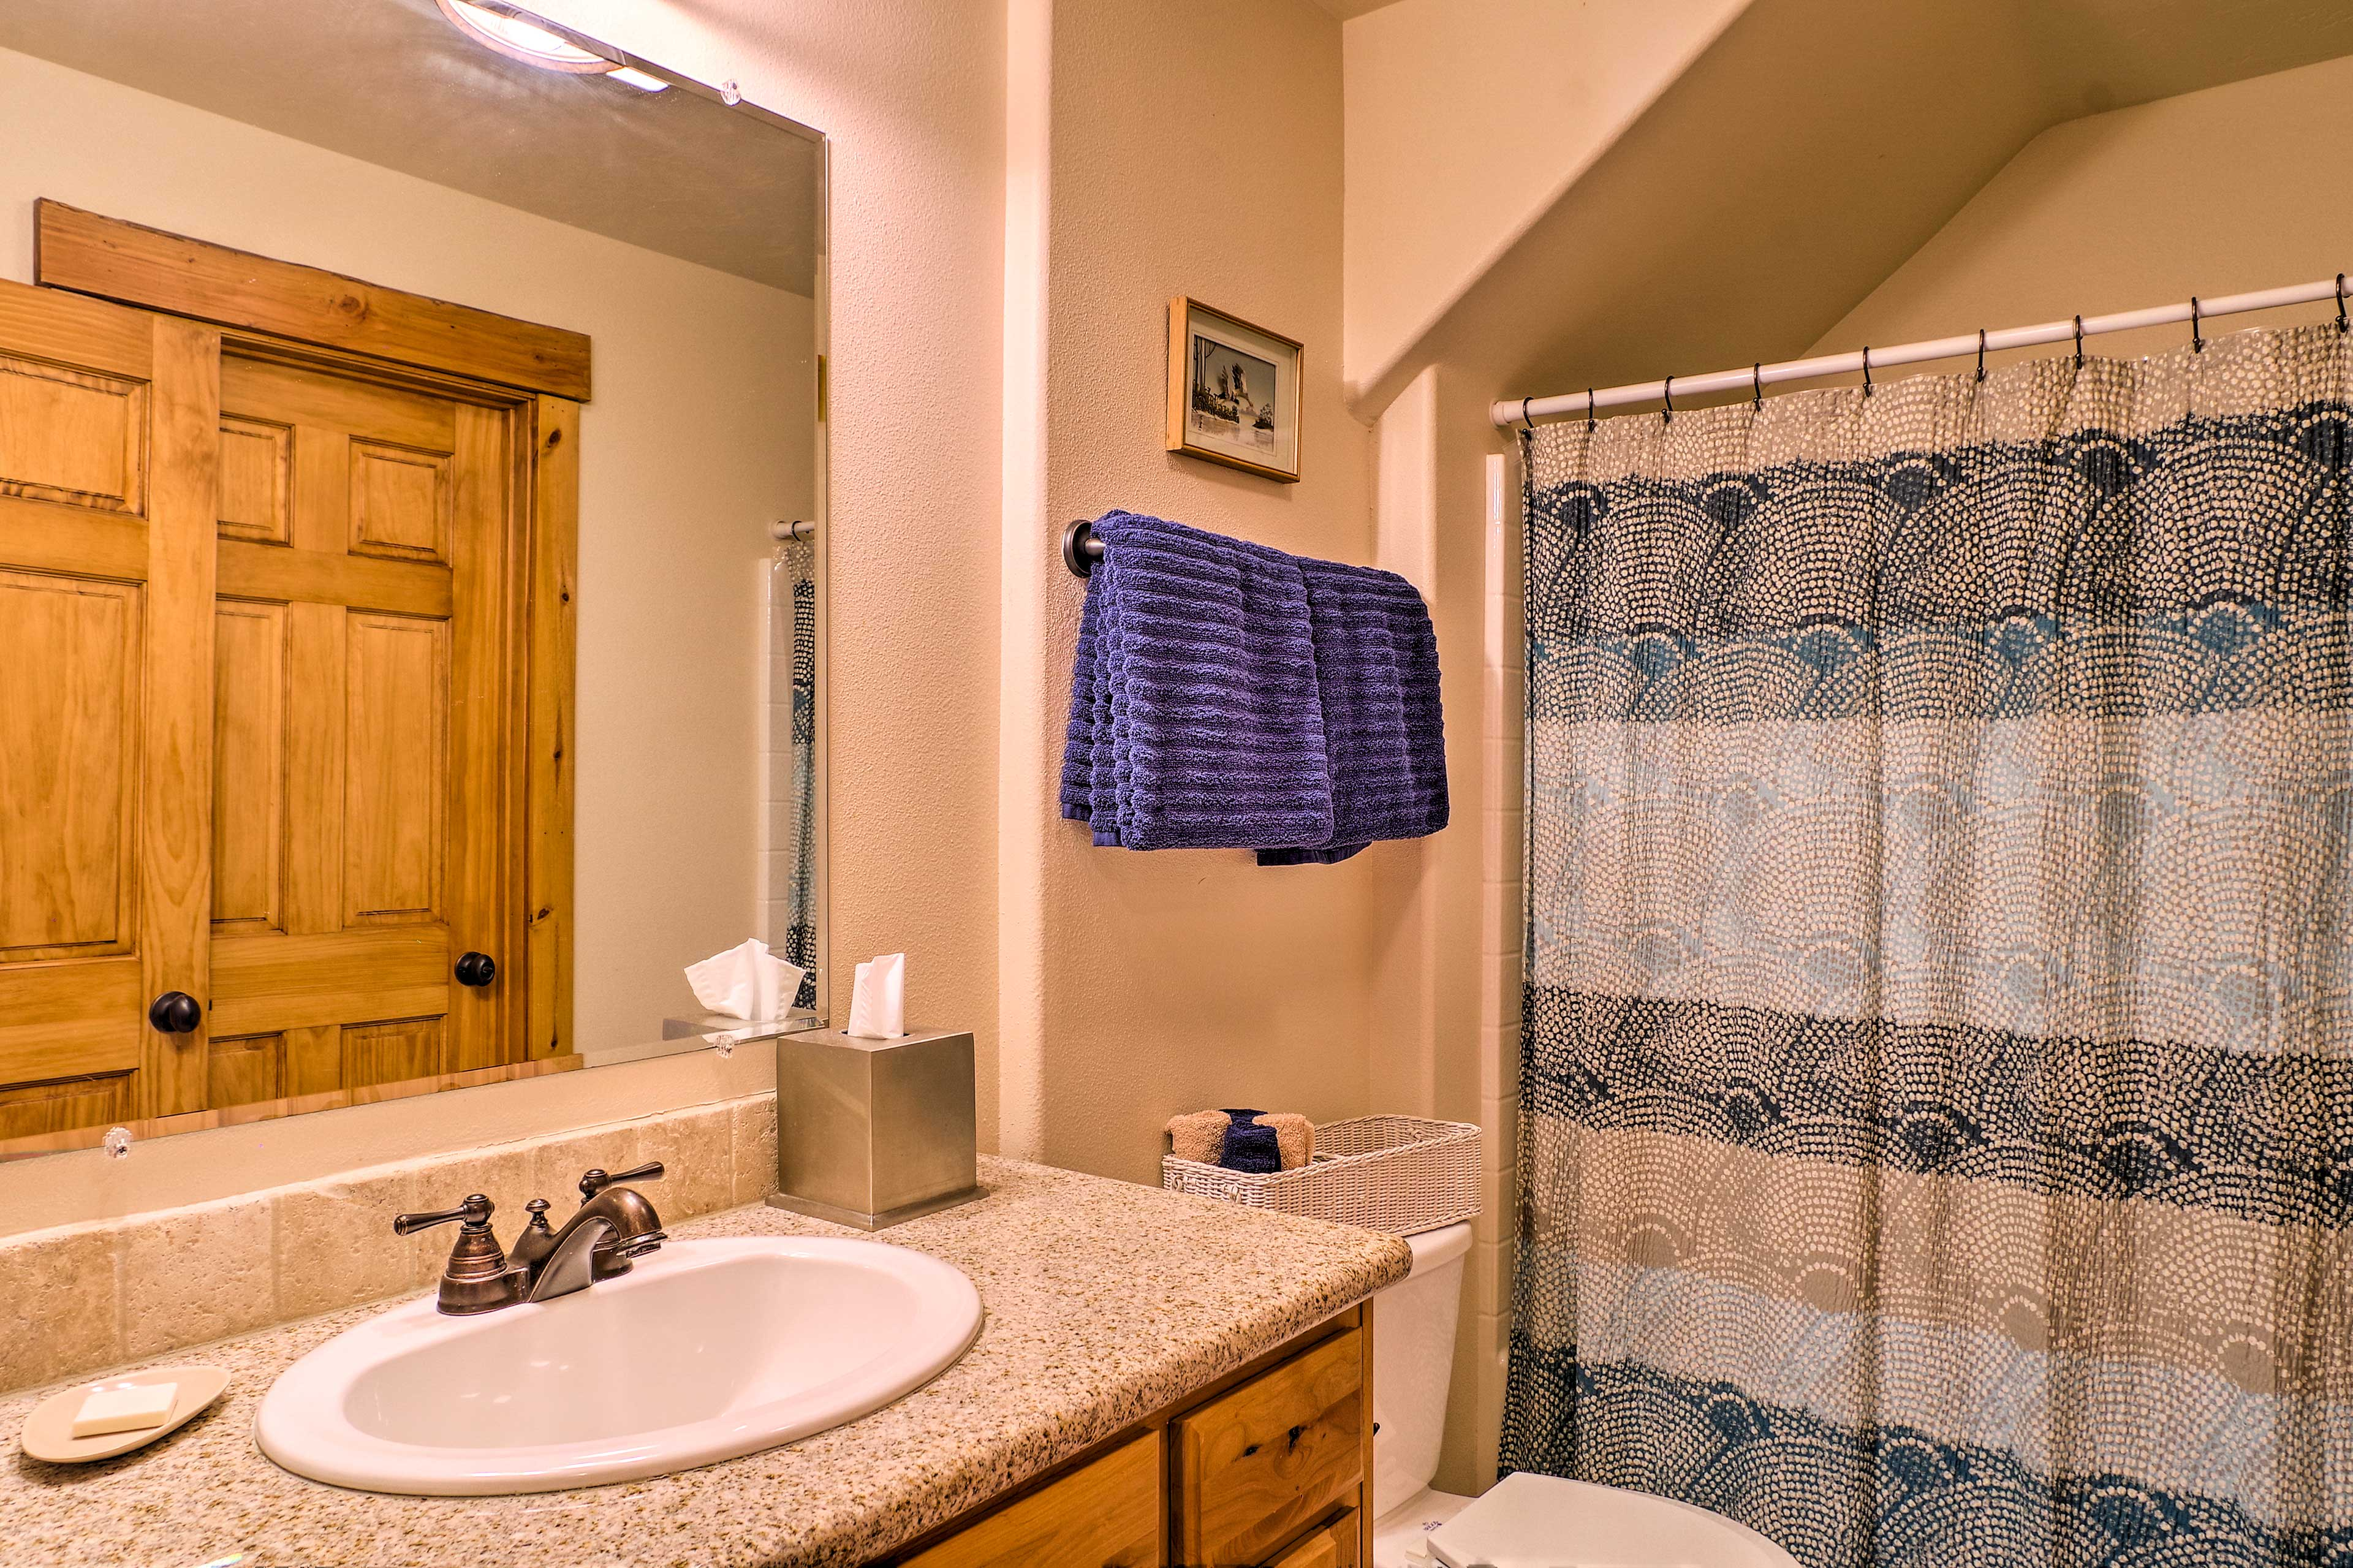 Rise and shine with a refreshing shower in the full bathroom.